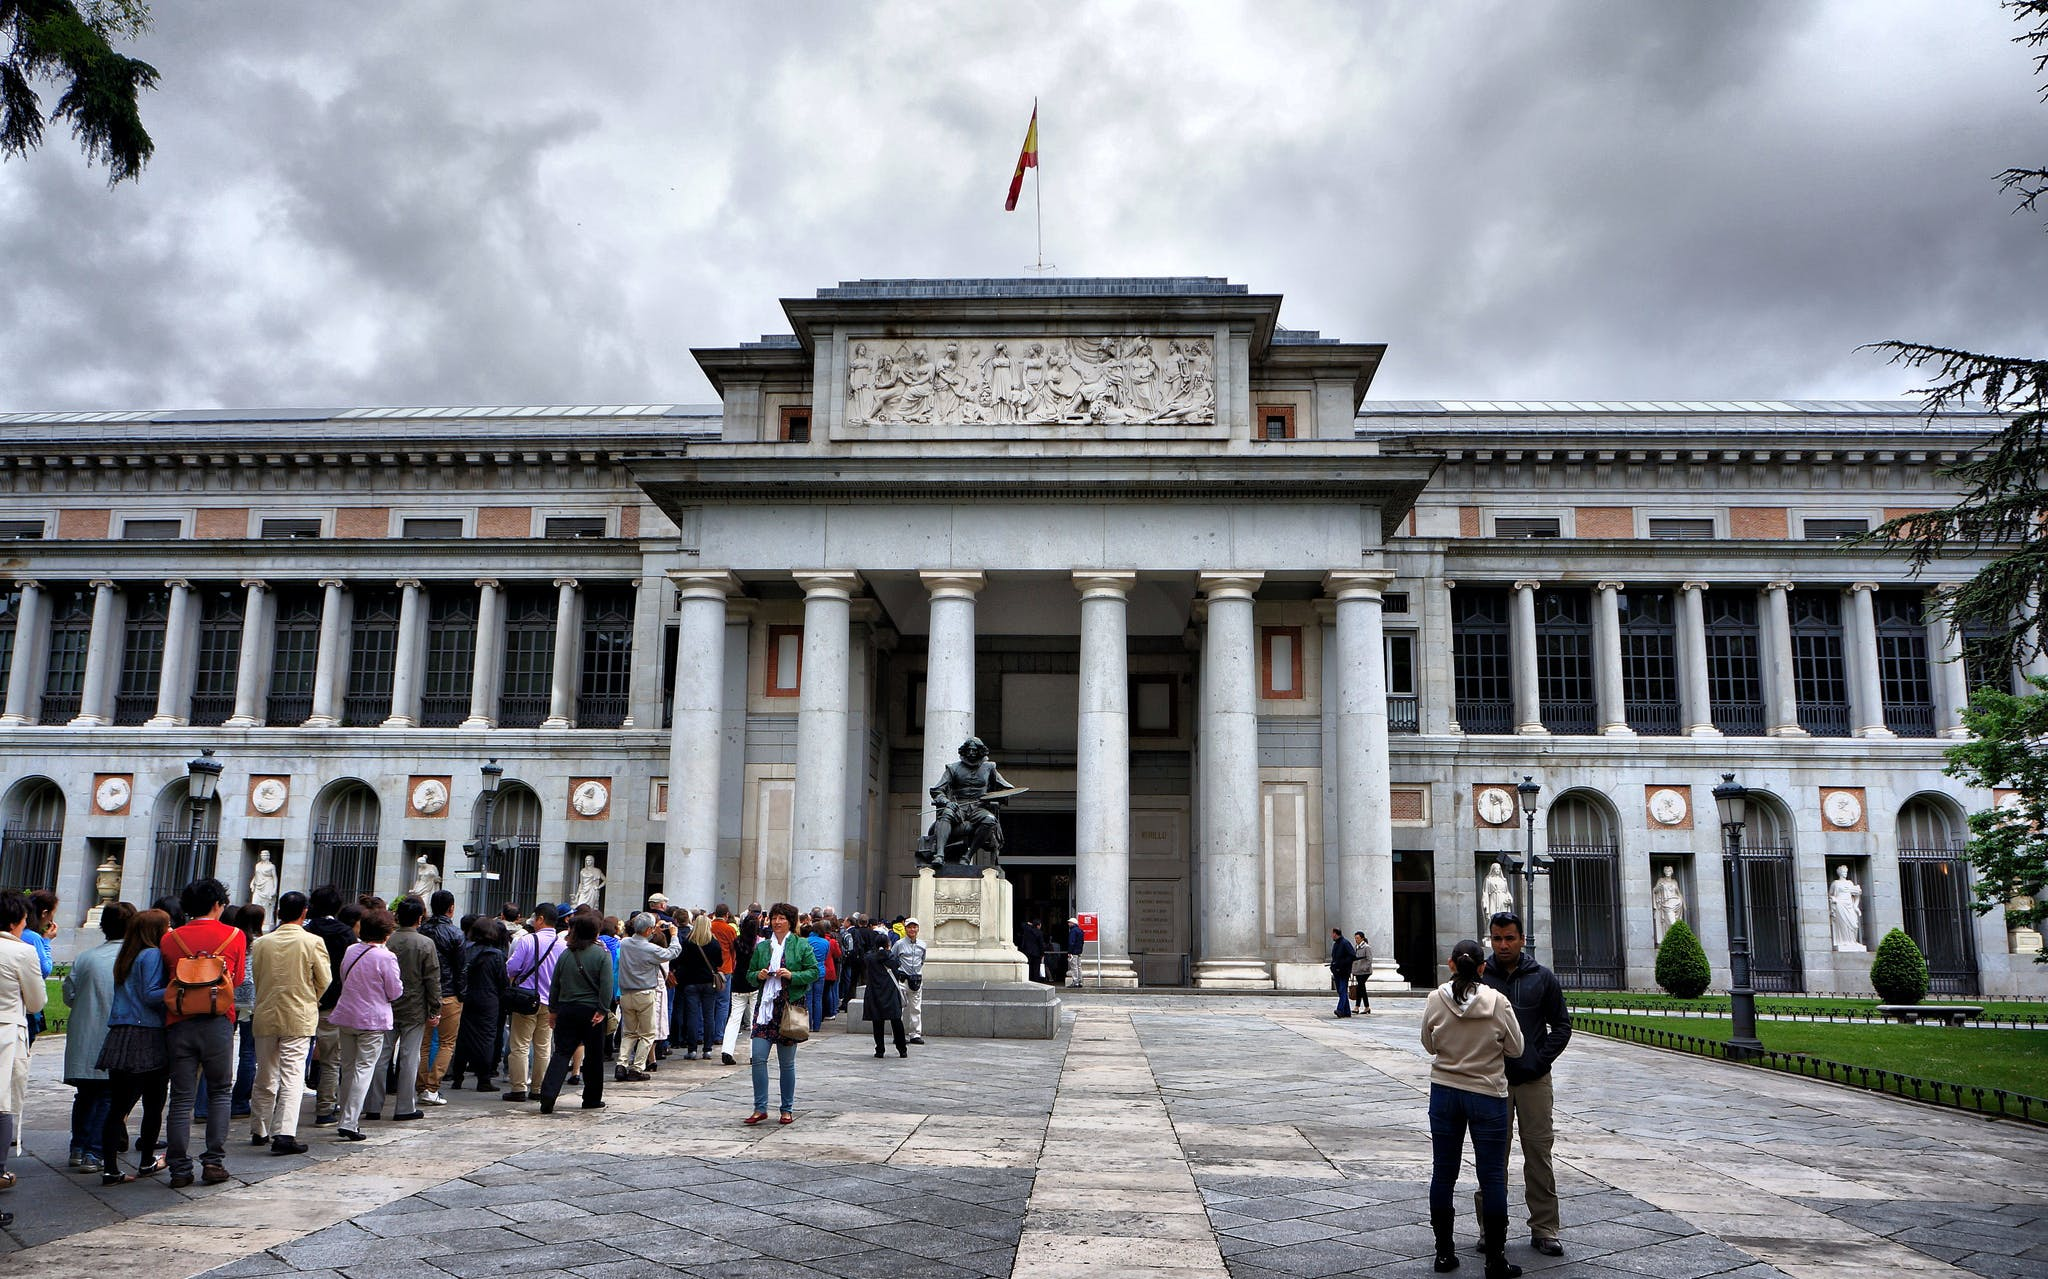 Prado Museum Guided Tour with Skip the Line Entry